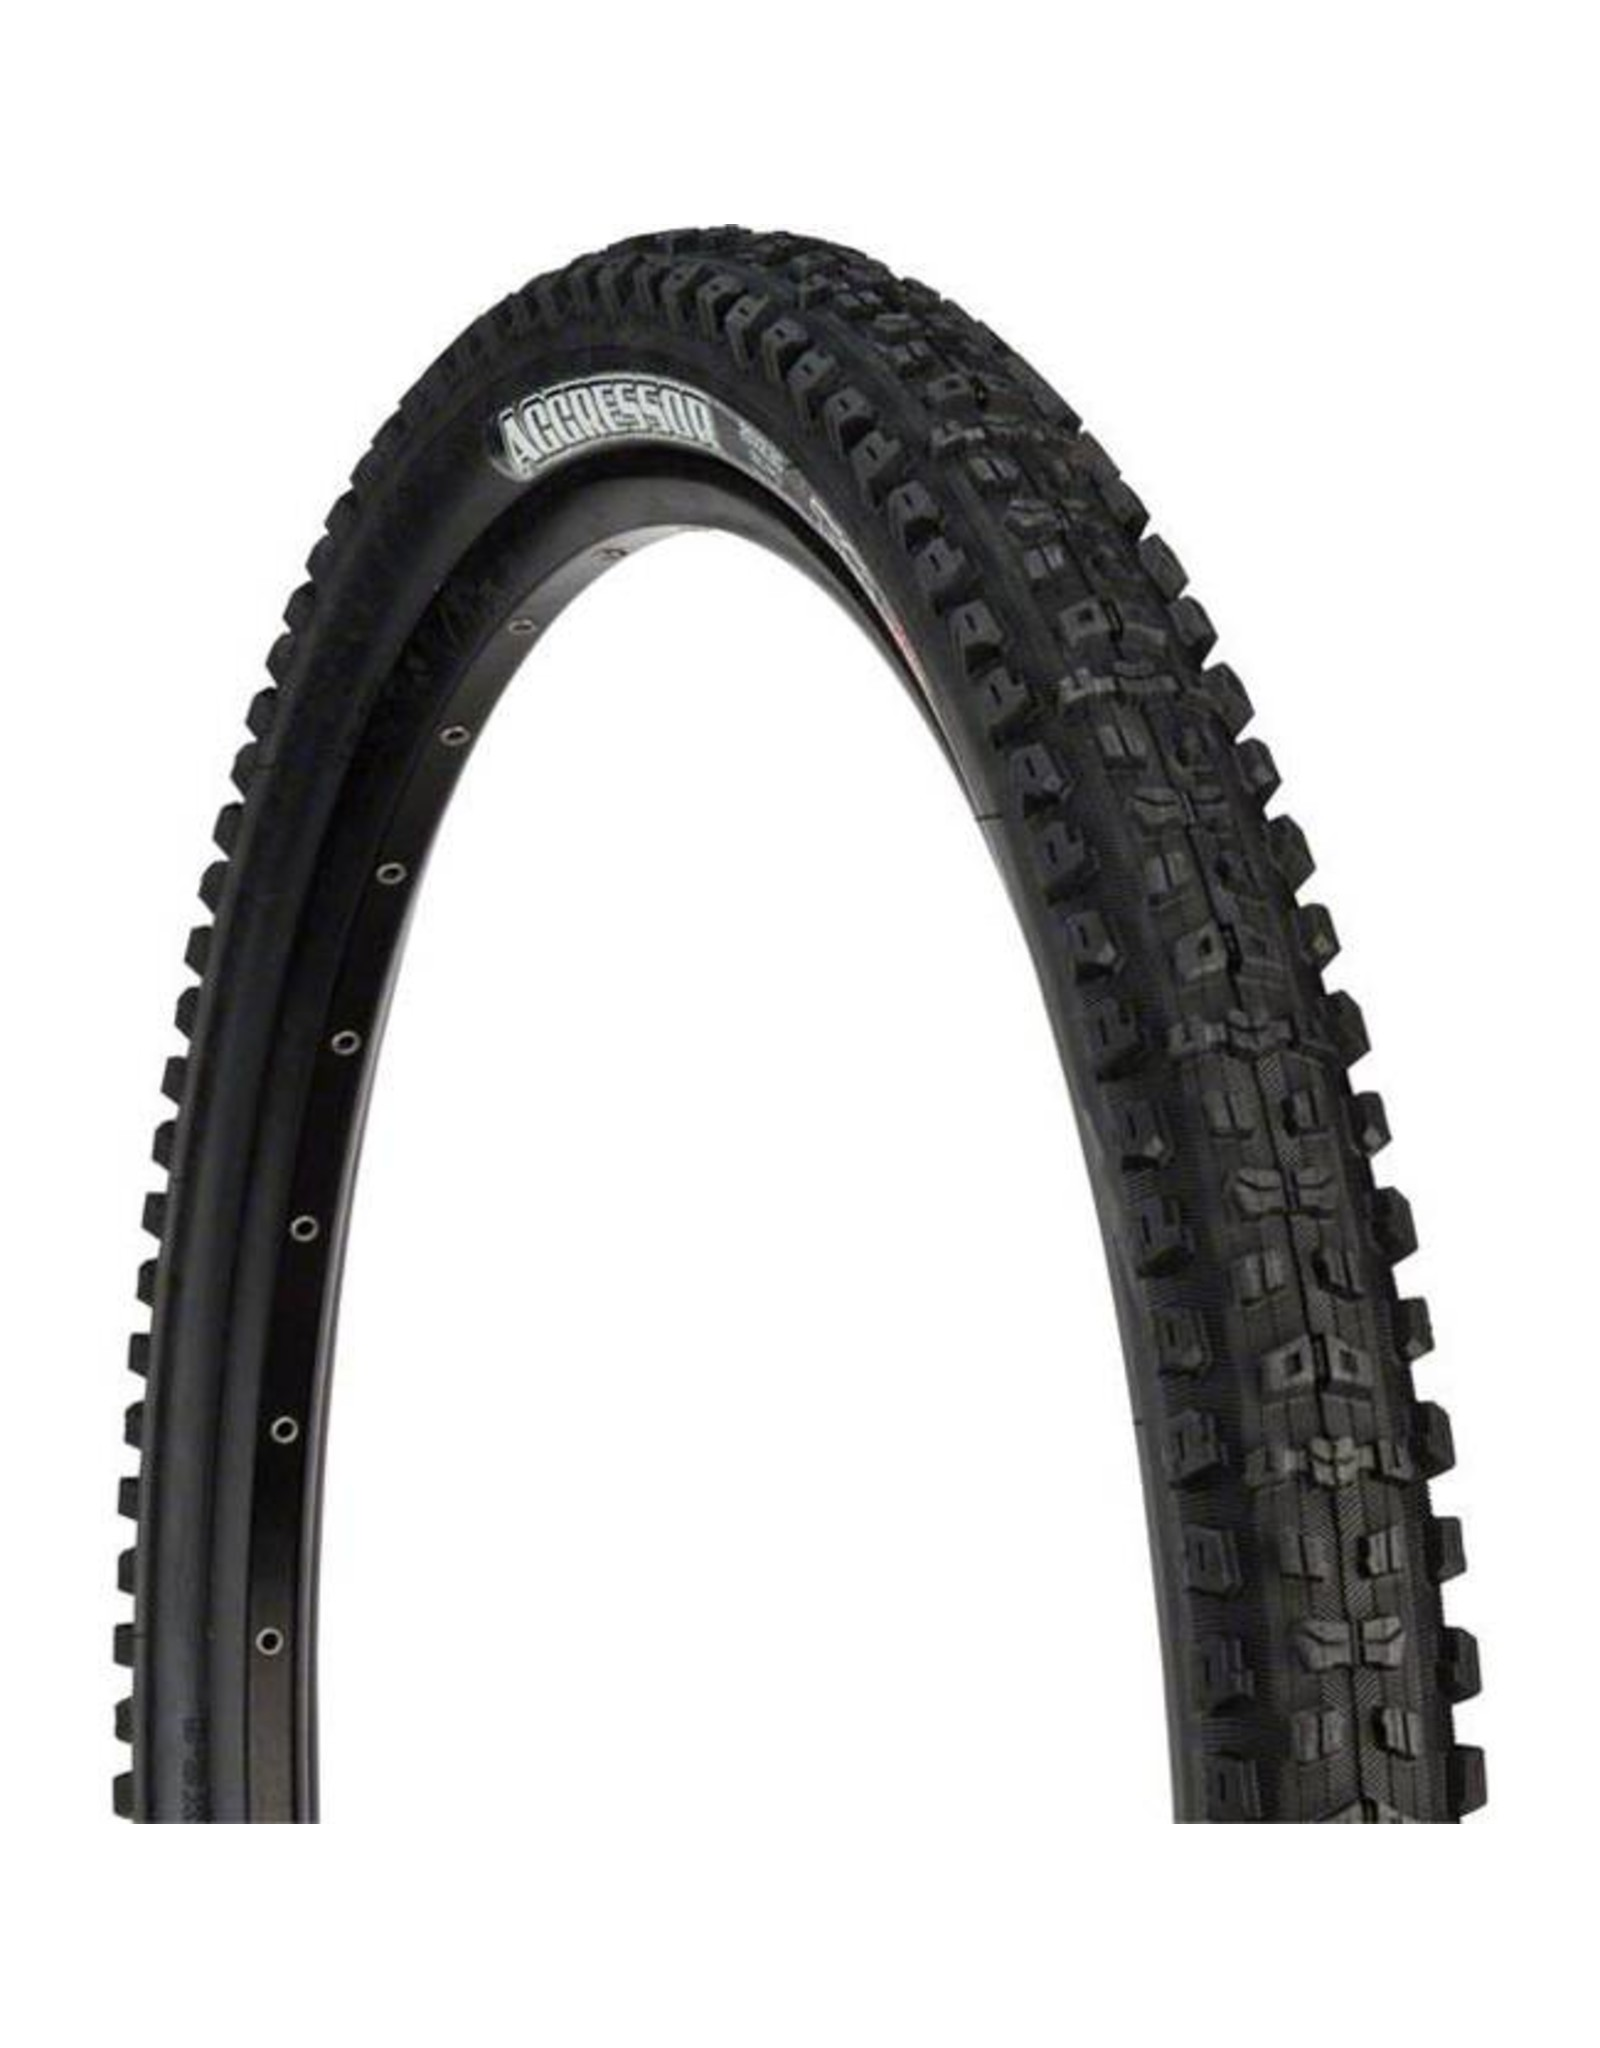 "Maxxis Maxxis Aggressor Tire: 27.5 x  2.30"", Folding, 120tpi, Dual Compound, Double Down, Tubeless Ready, Black"